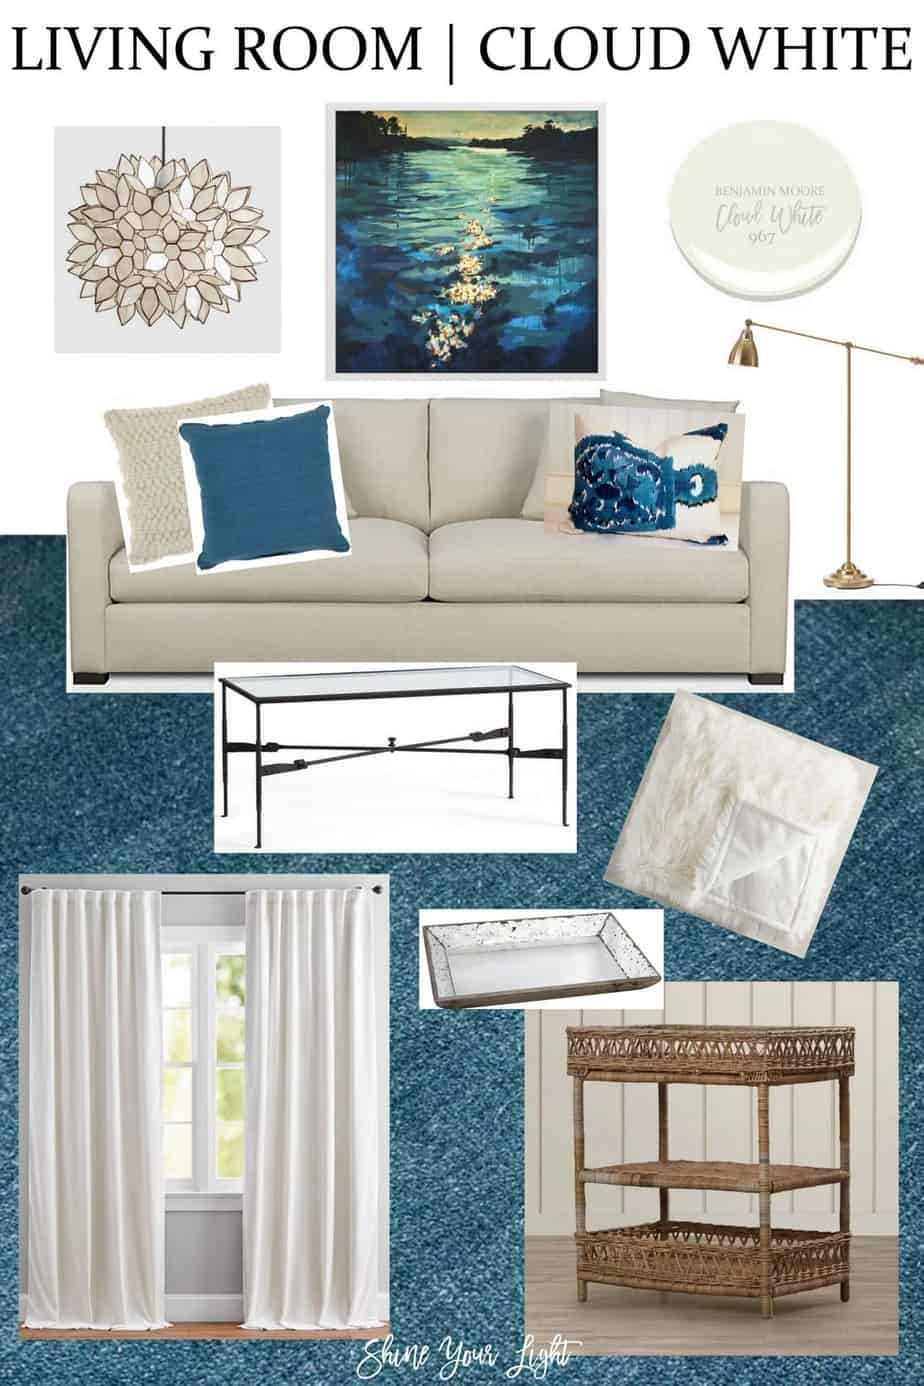 Living Room Design In Cream & Teal - Shine Your Light